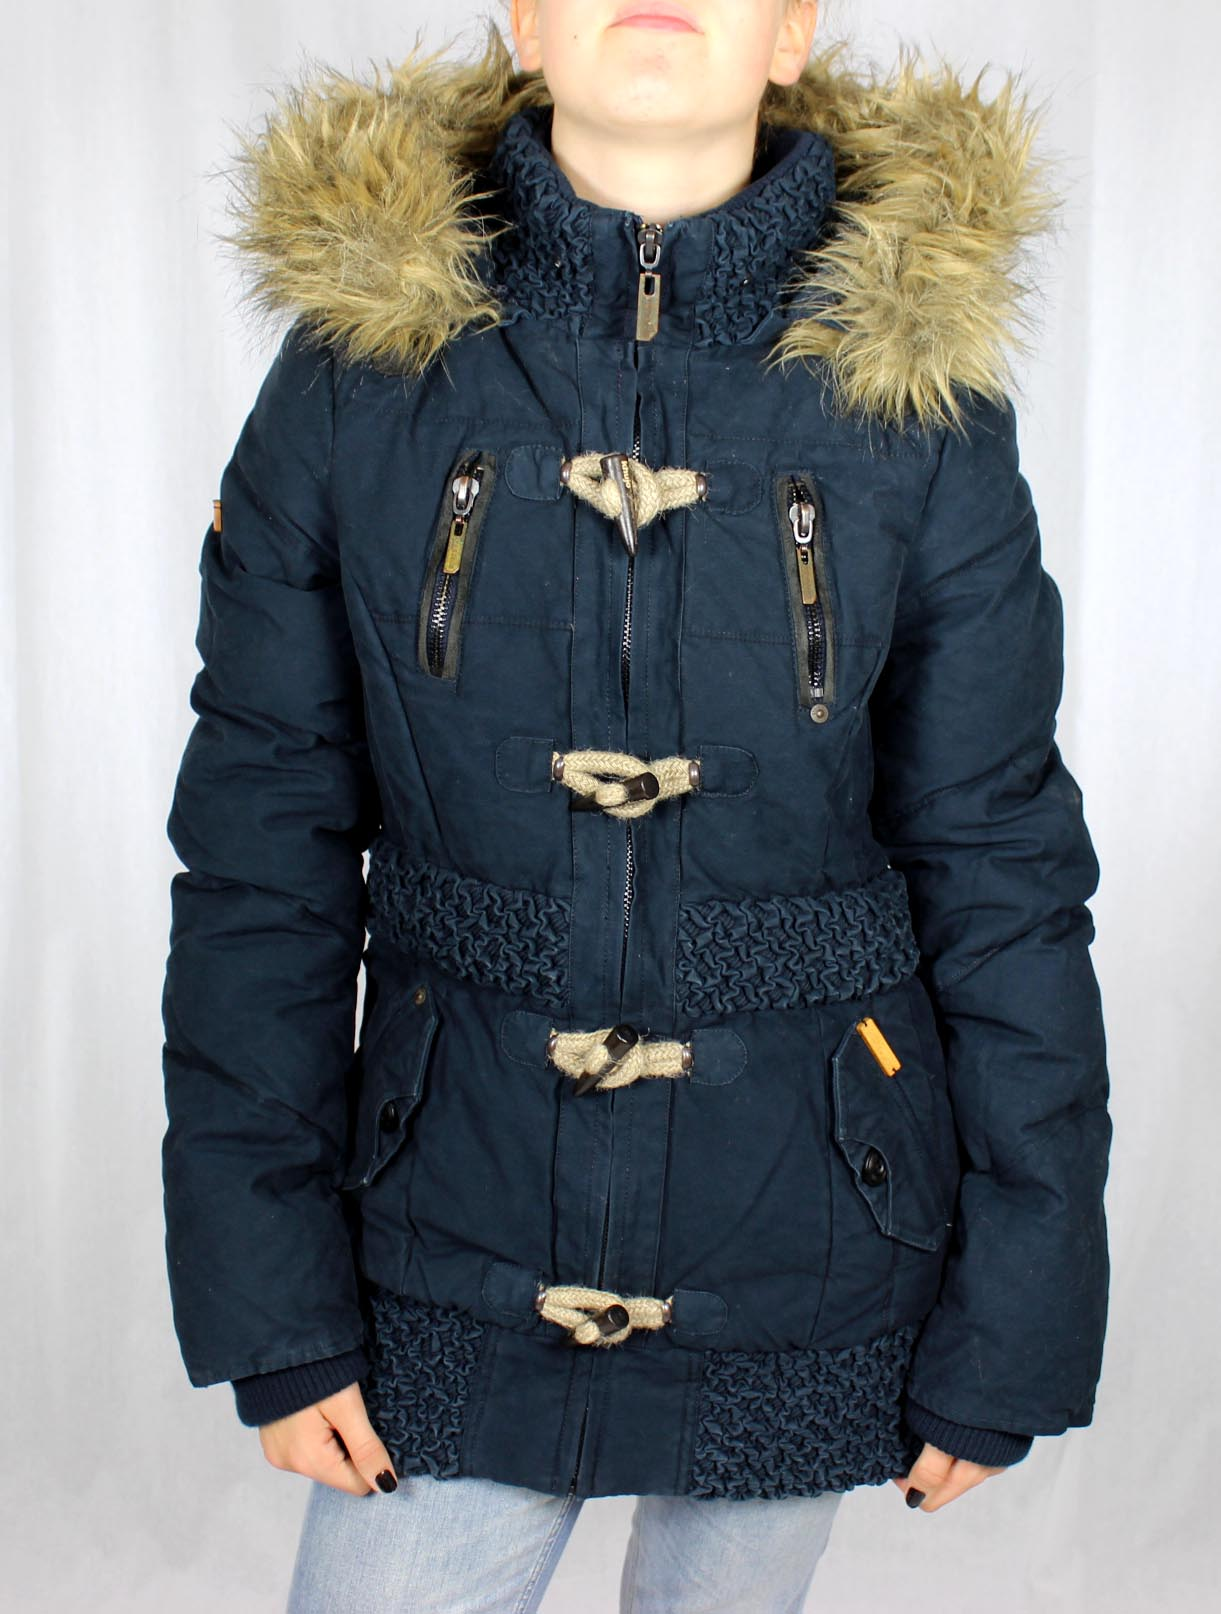 khujo damen winterjacke dunkelblau tilt jacke girls winter navy parka 1288jk123 ebay. Black Bedroom Furniture Sets. Home Design Ideas